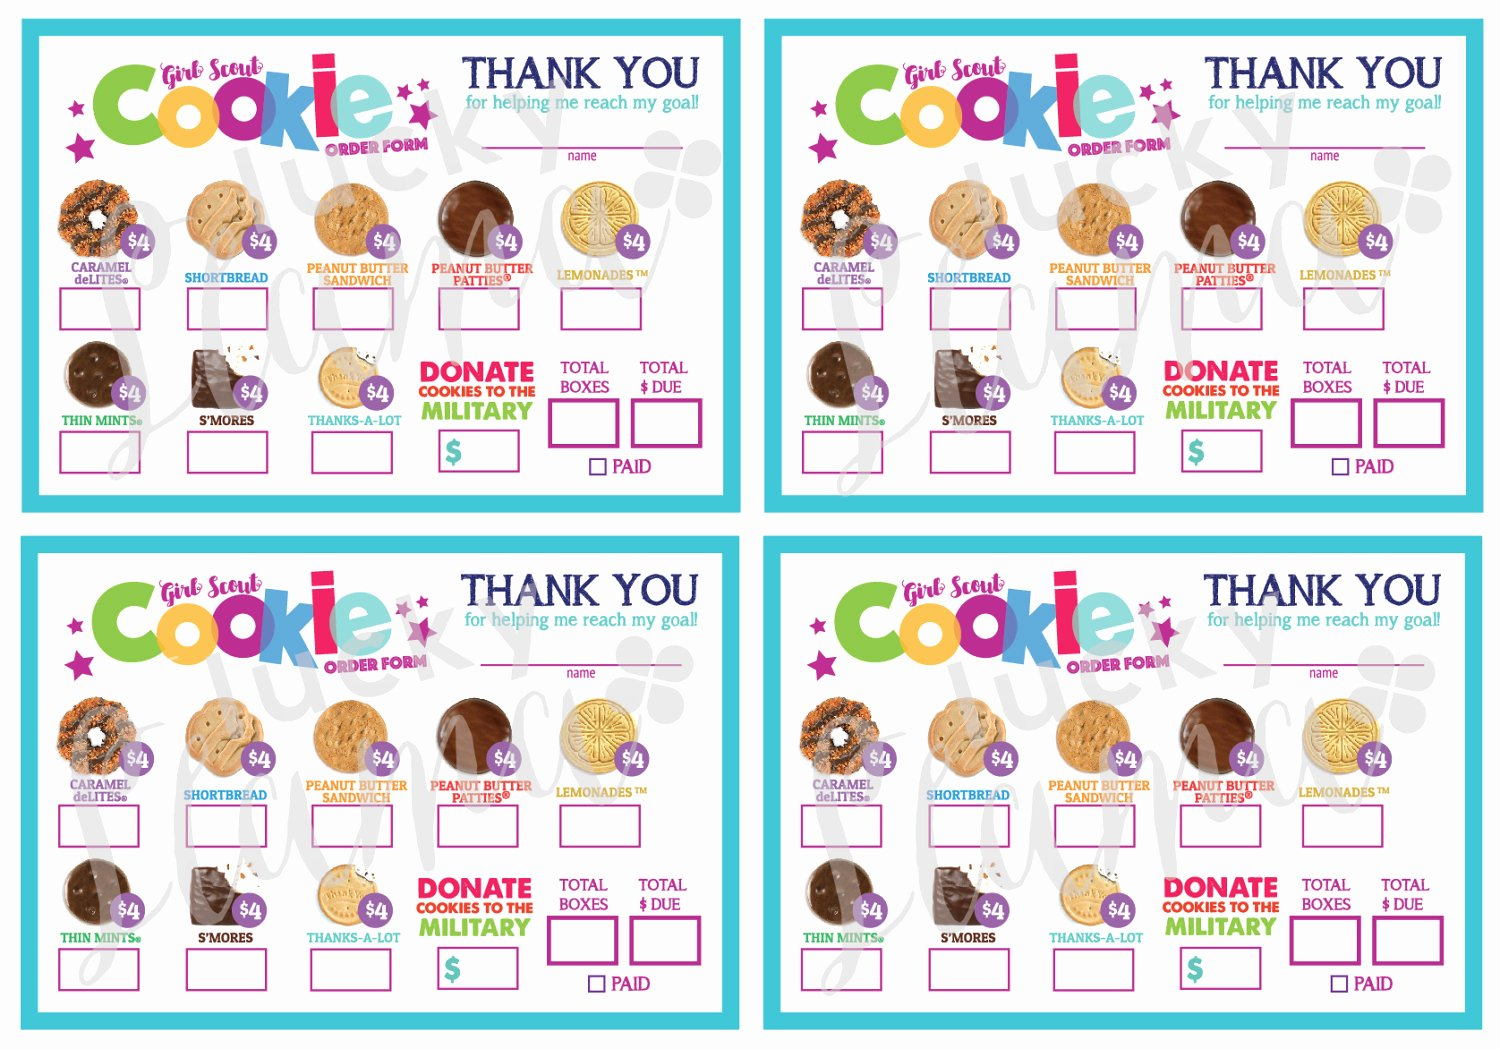 Cookie order form Template Luxury 2018 Mini Girl Scout Cookie order form Printable